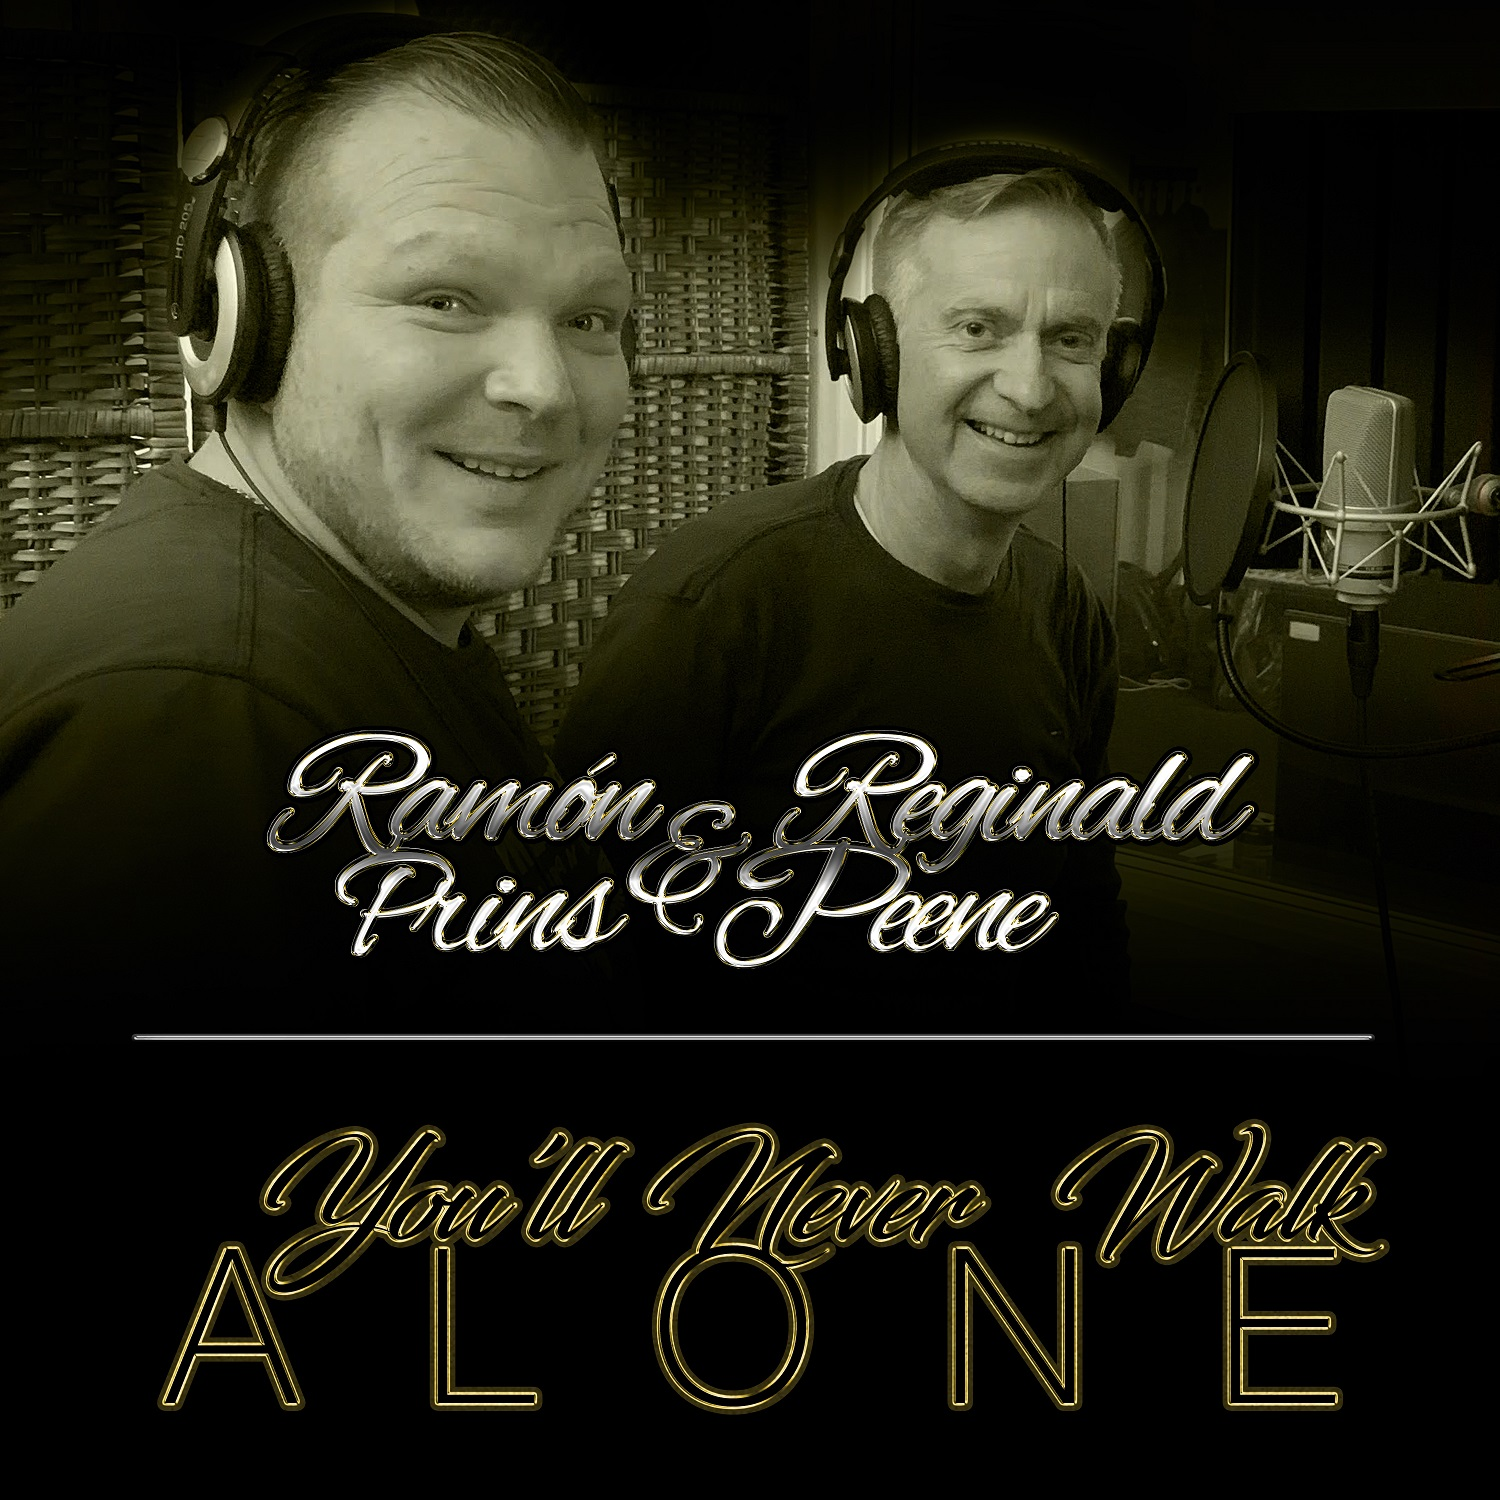 RAMON PRINS & REGINALD PEENE - You'll Never Walk Alone